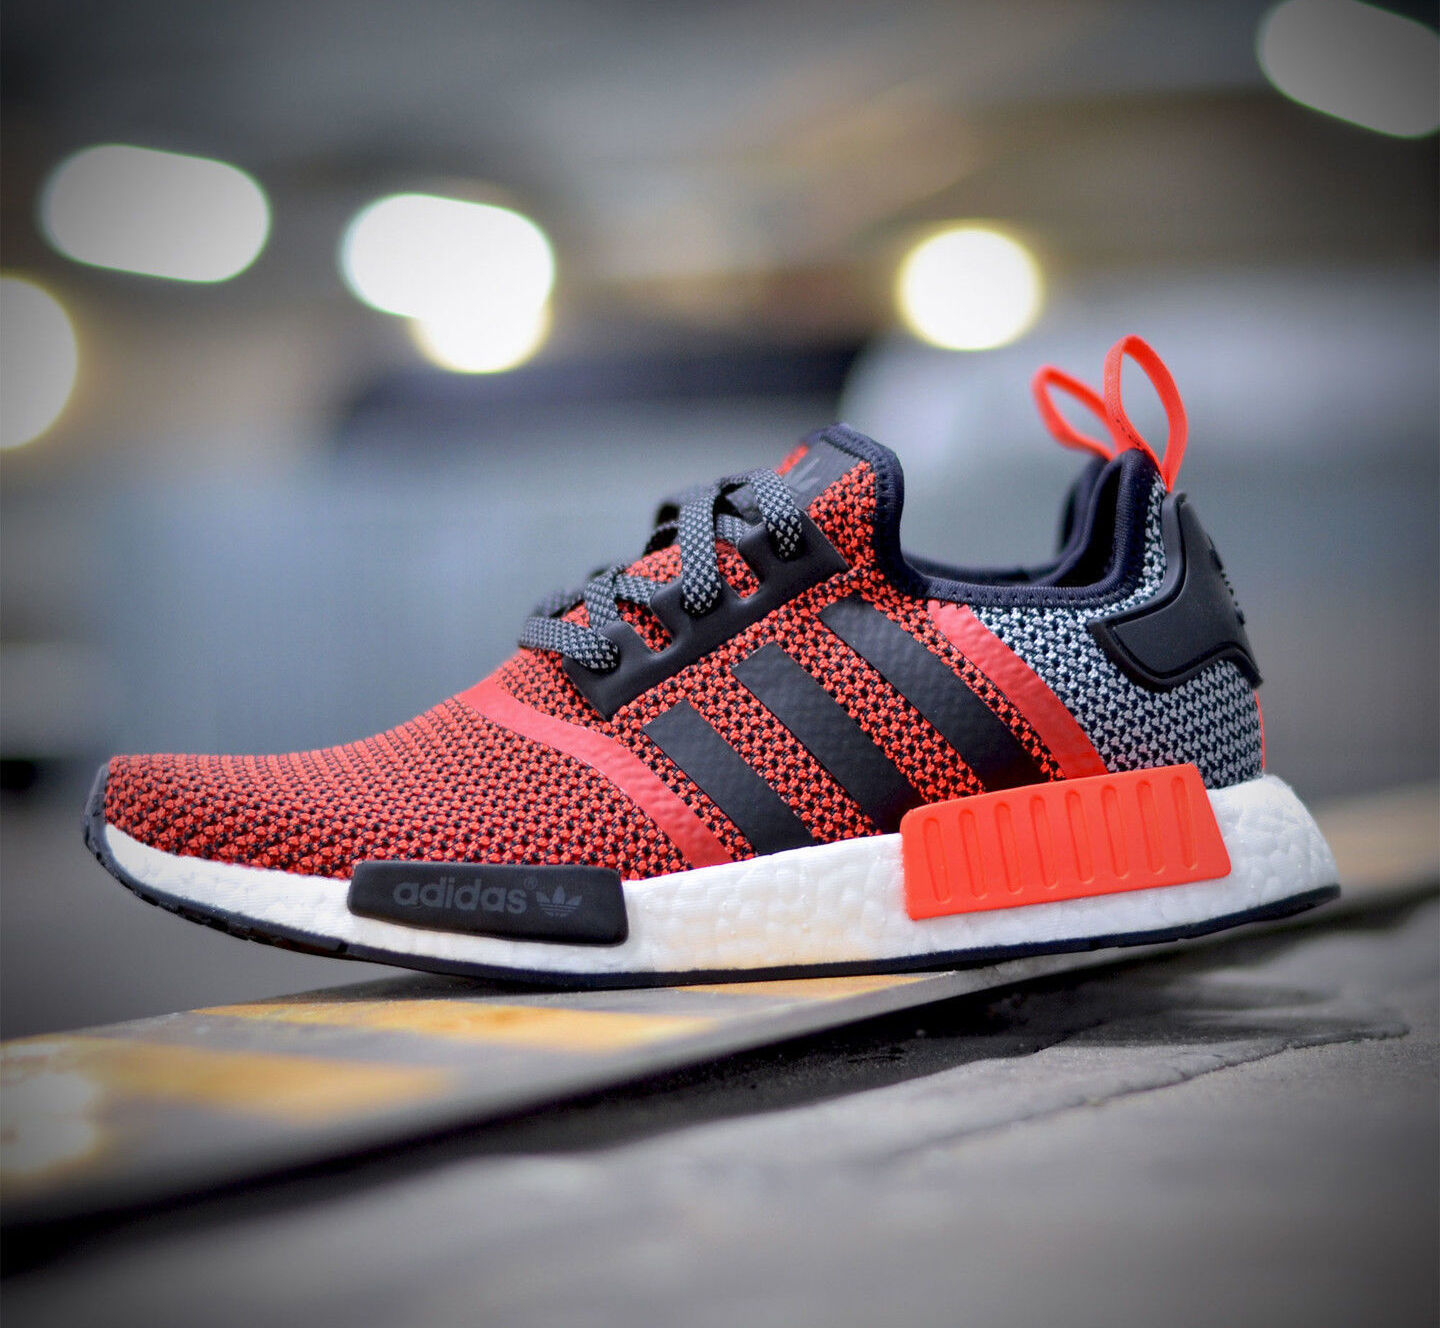 Adidas NMD R1 Runner S79158 Lush Red ( All Size Knit ) PK Boost OG Knit Size Limited Rare 00c874